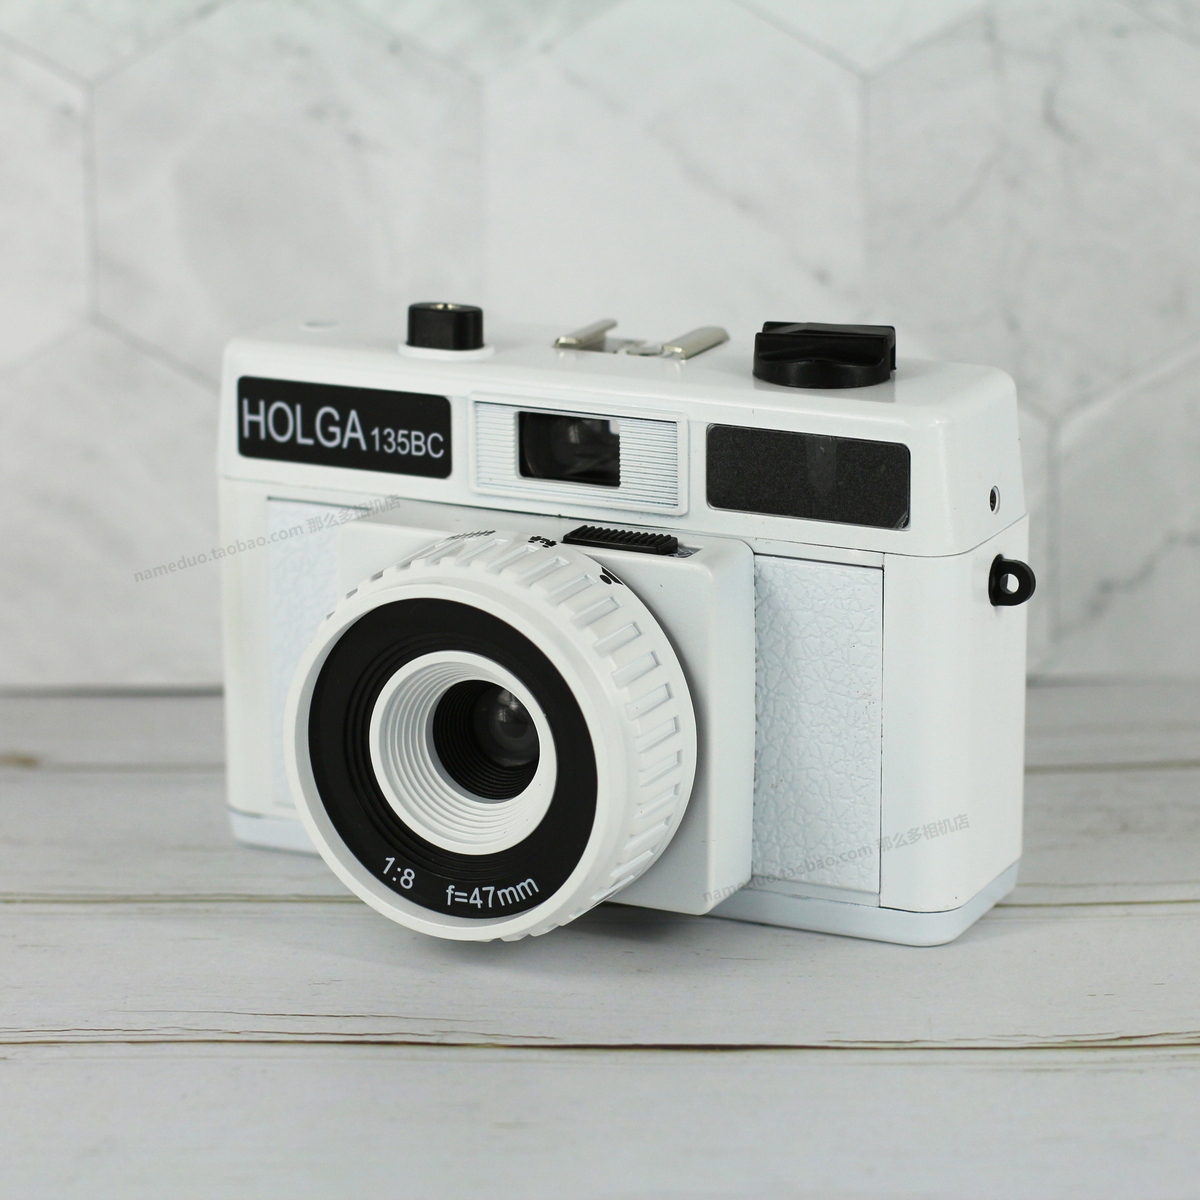 Mail free! Retro film point and shoot camera 135bc dark angle multi exposure long exposure film camera